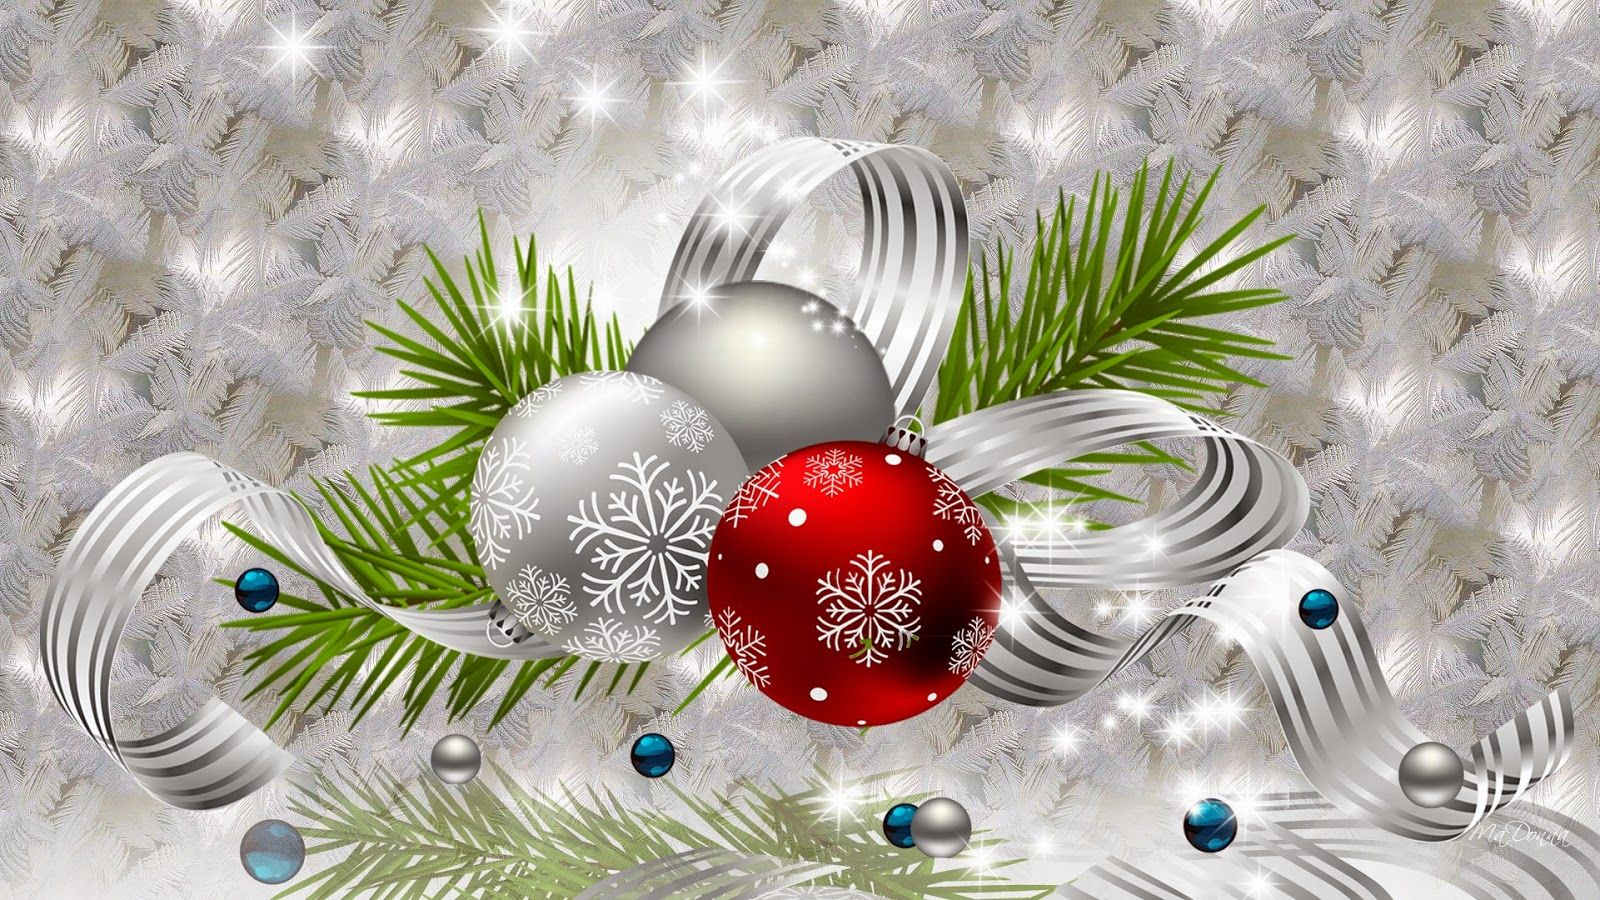 Silver Bells Wallpaper Background | PIXHOME: Christmas tree ...